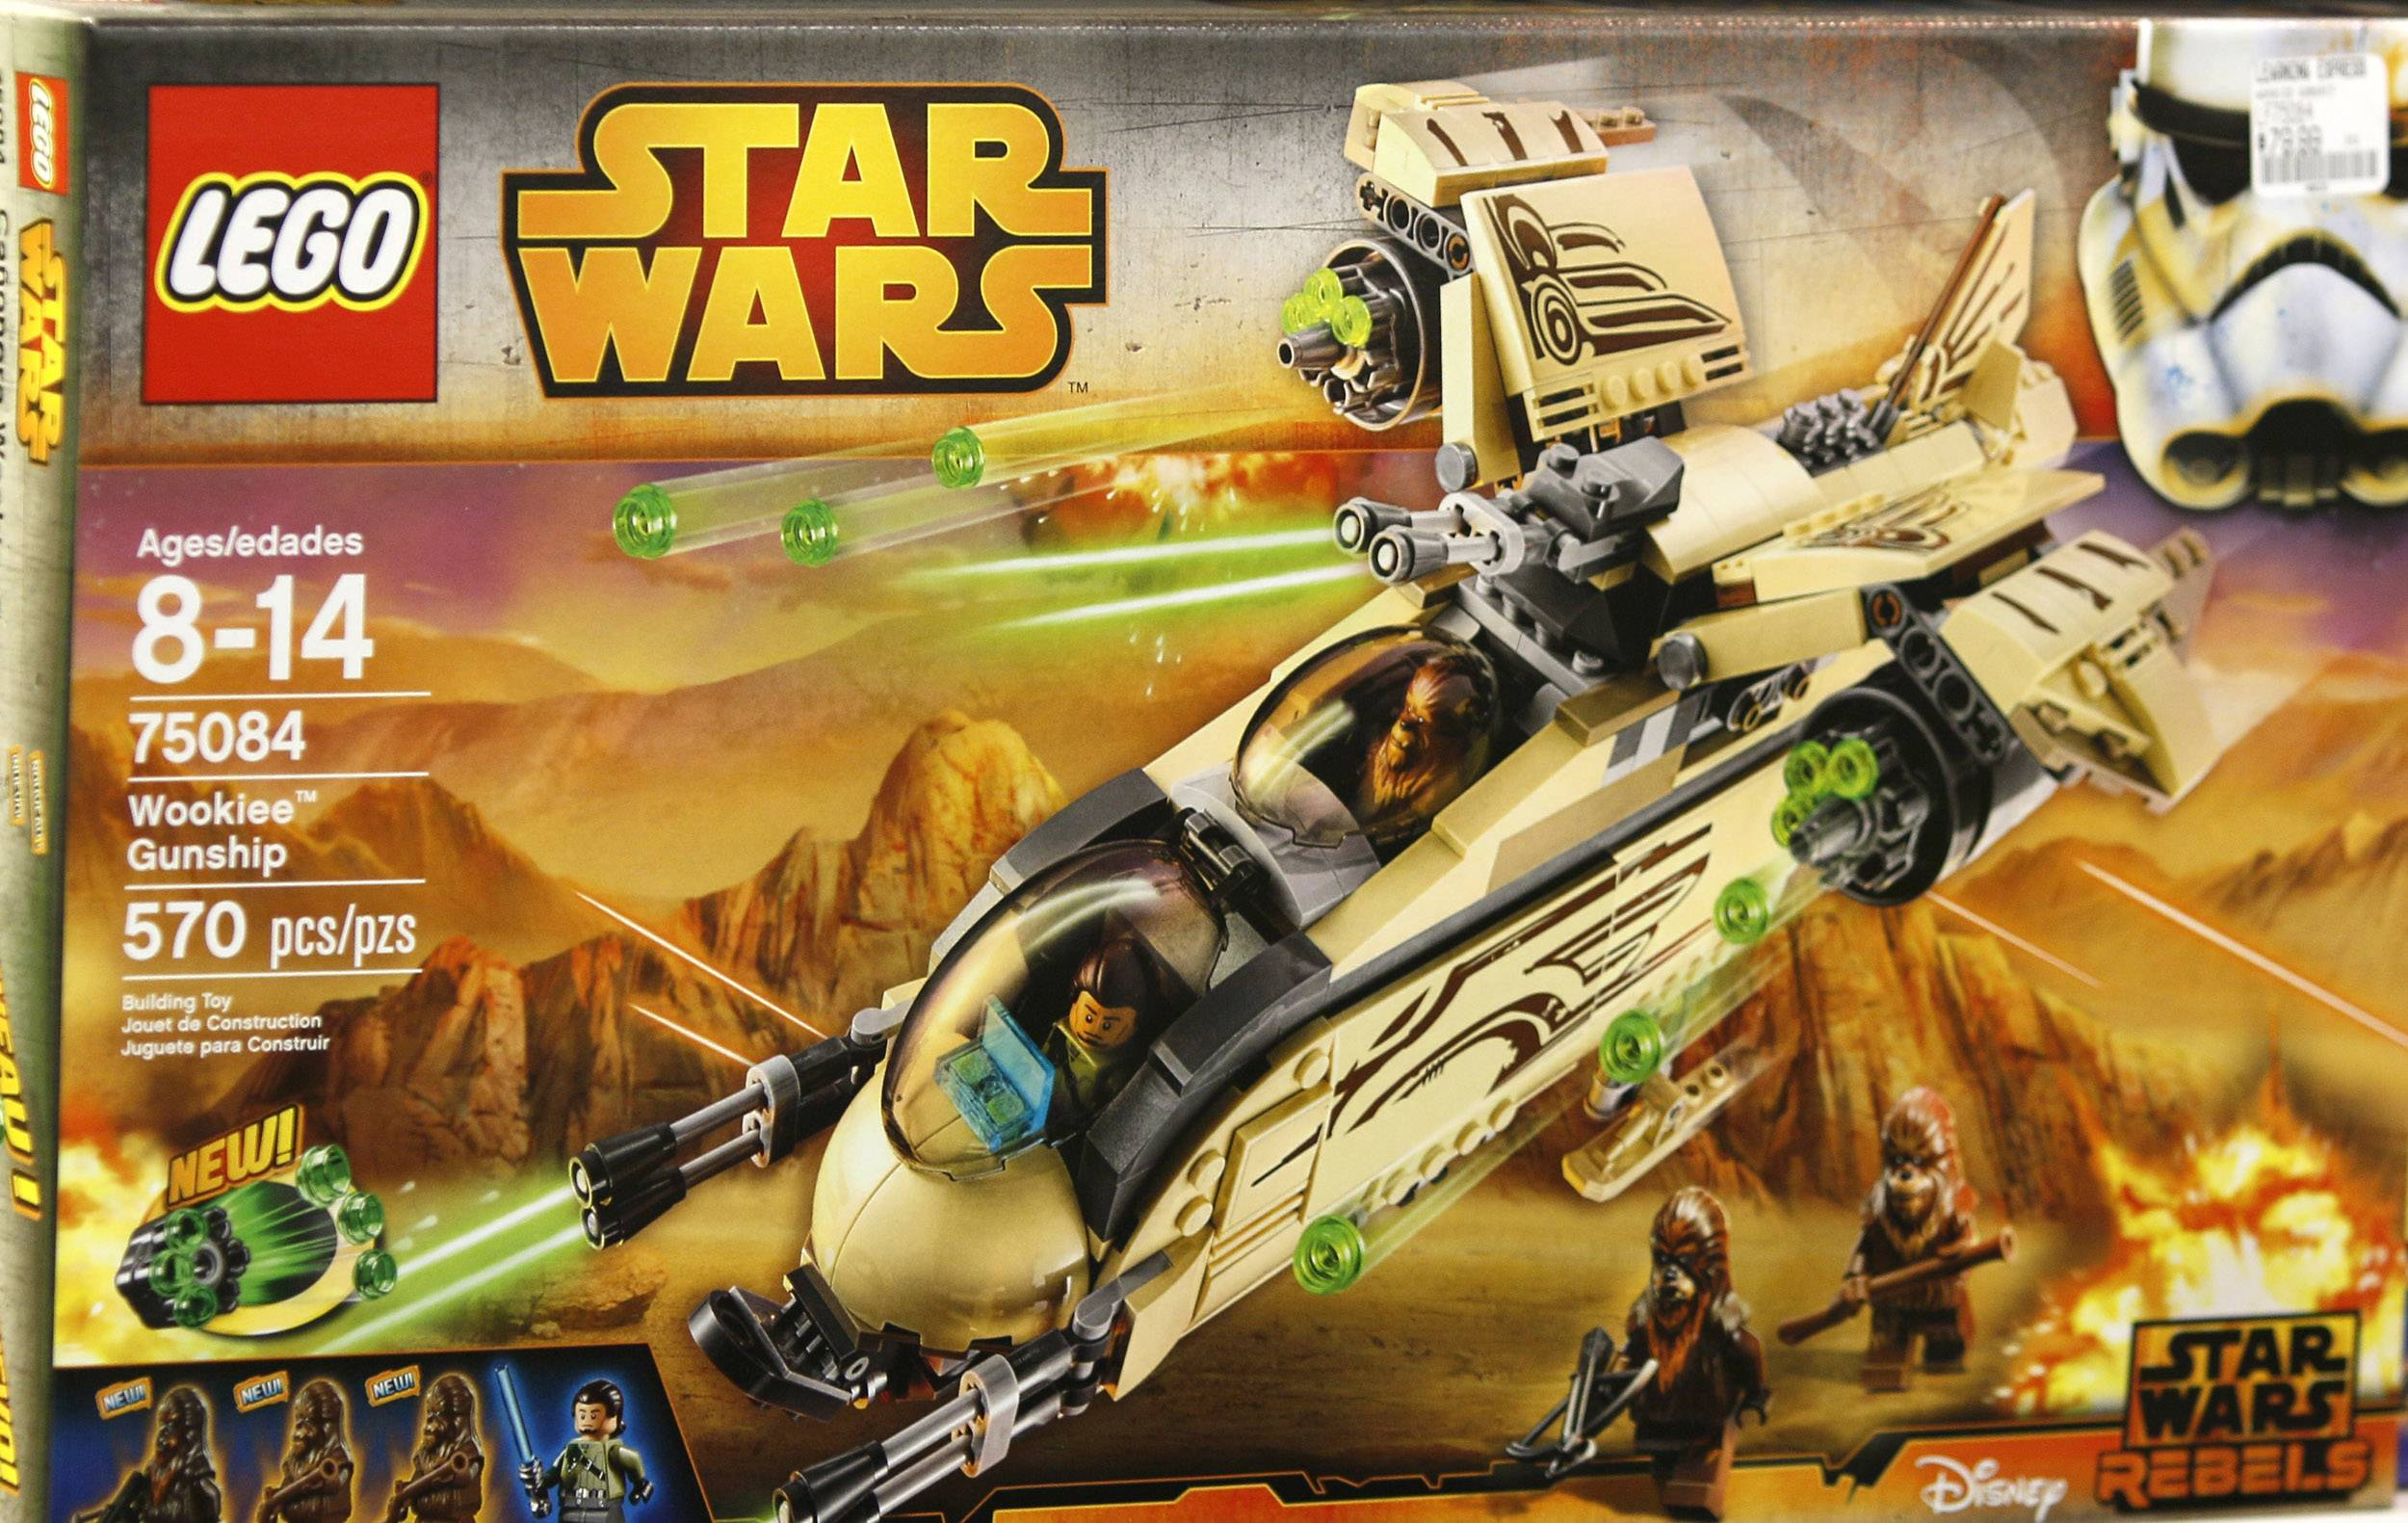 Suburban toy stores say Star Wars, new trends emerge